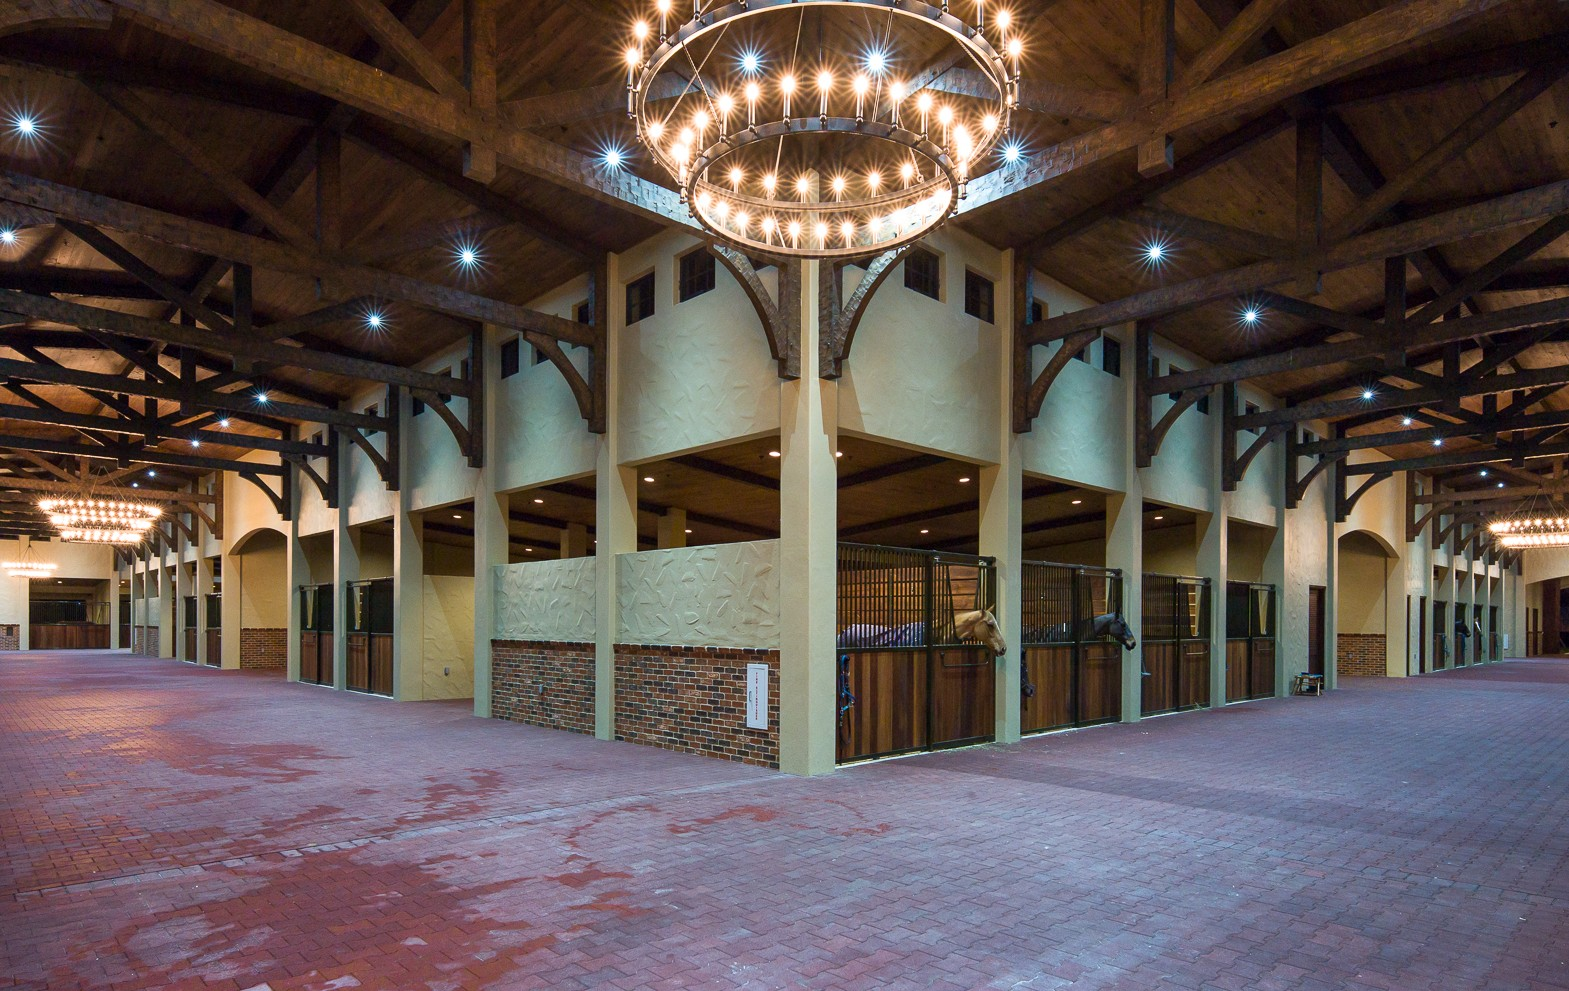 timber frame interior of the largest horse barn in the US